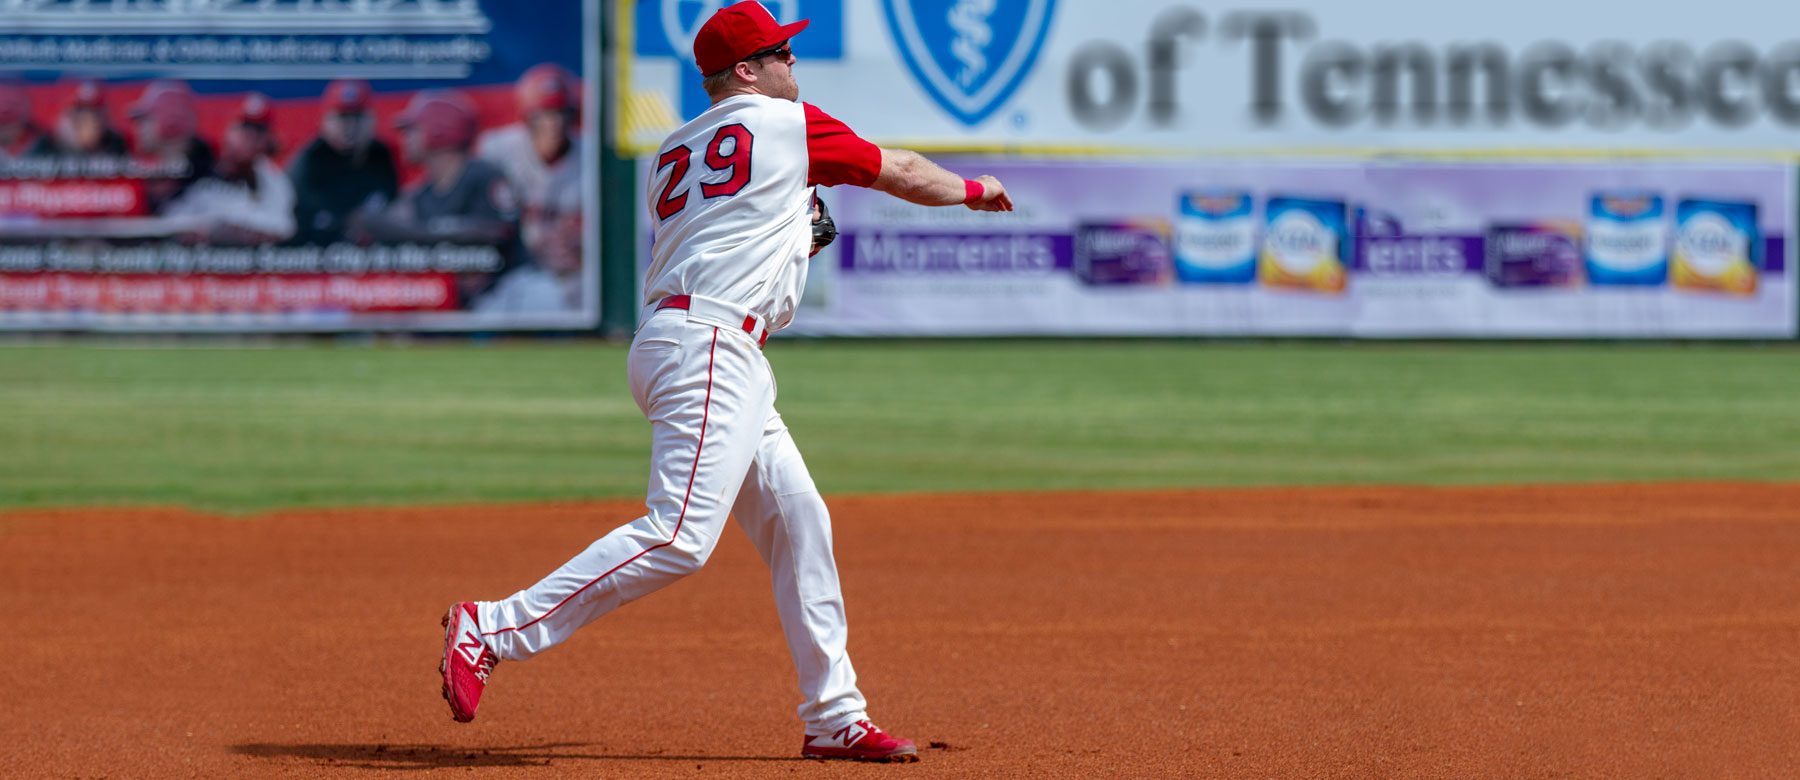 Cincinnati Reds Minor League Game Review: 7/9/19